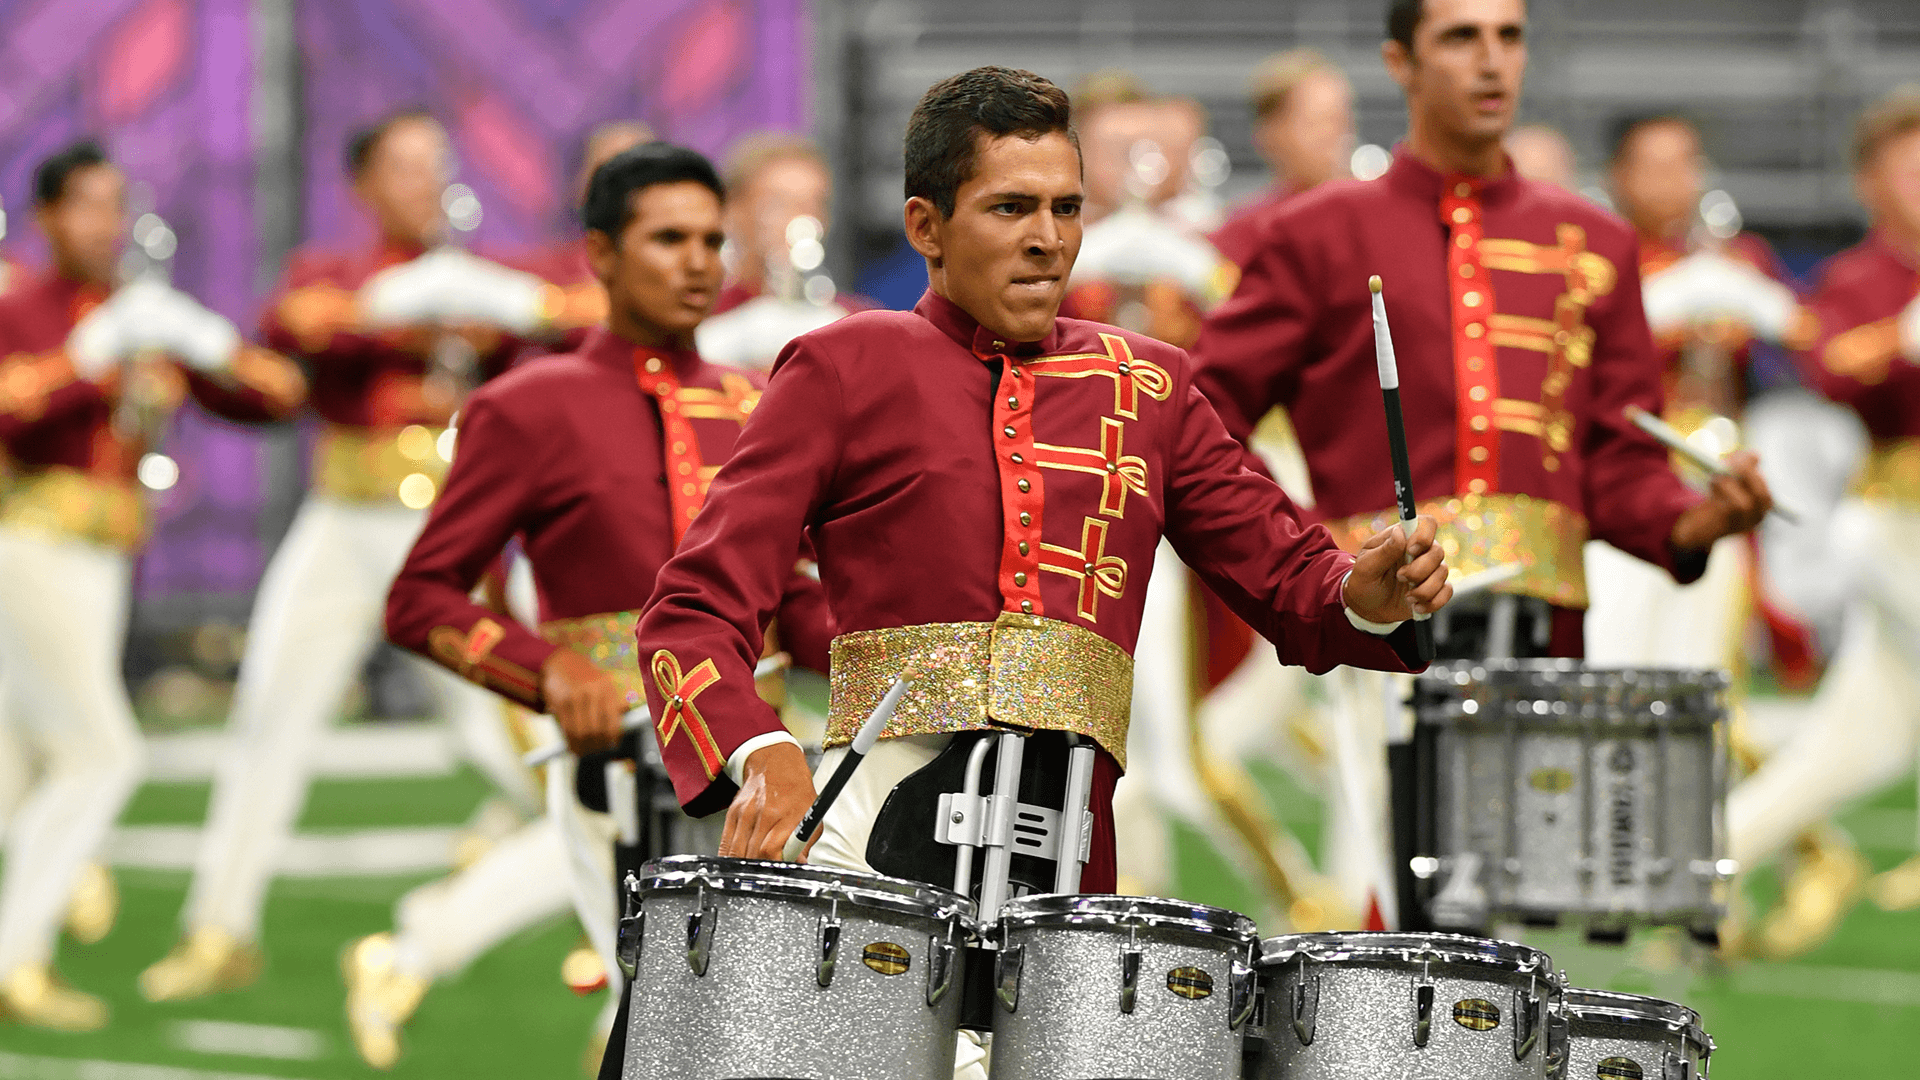 Drum Corps: An American Tradition- Annapolis